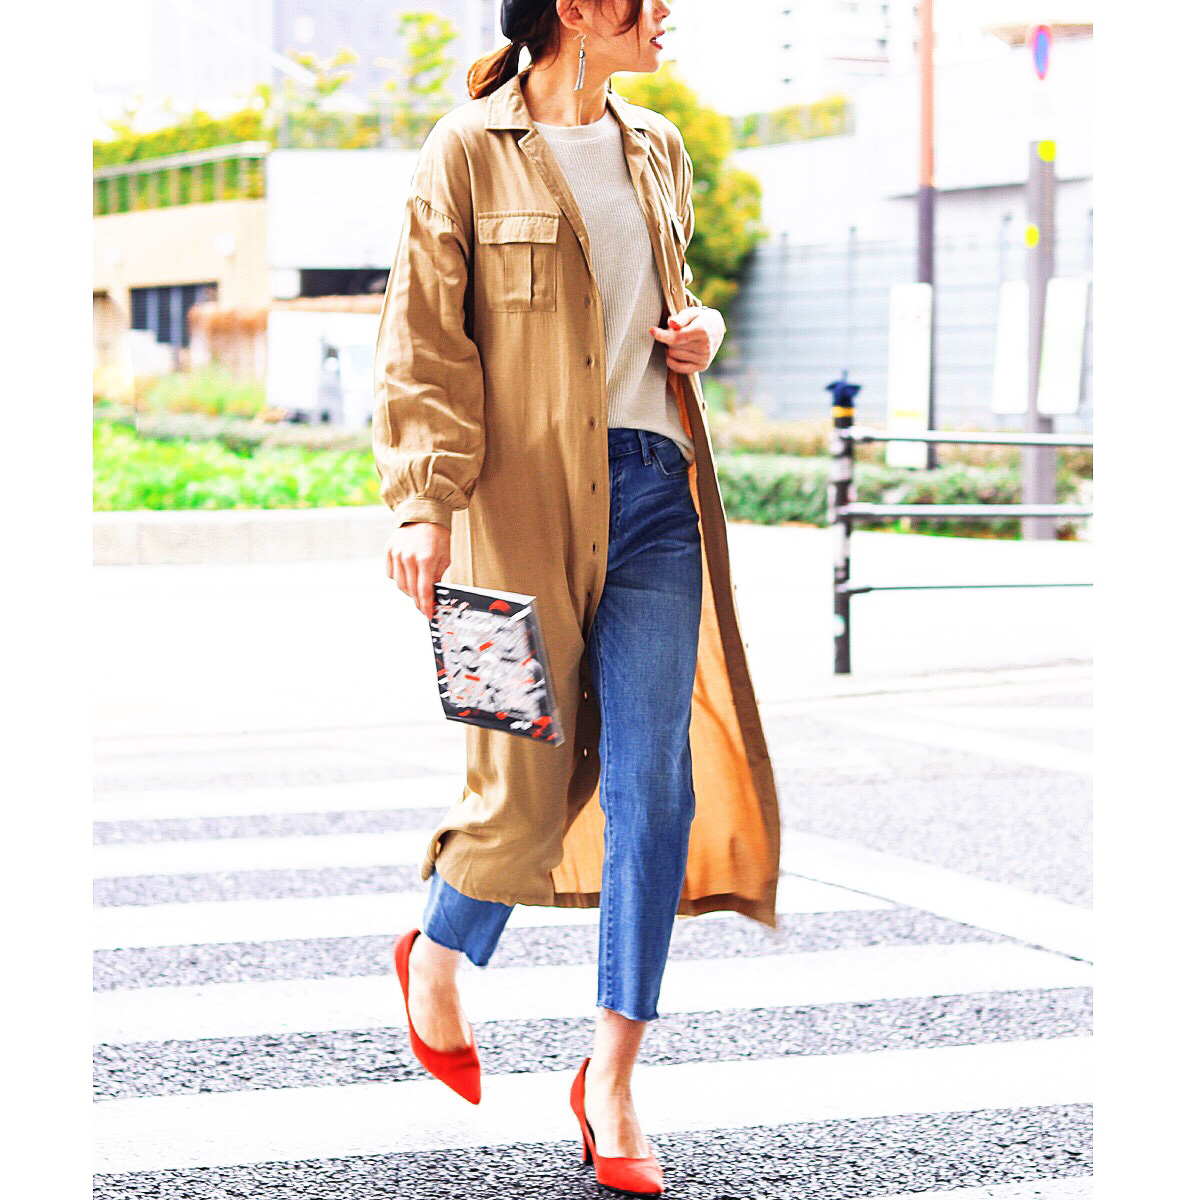 3bb8c67f80e806 A jacket dross Steller's sea lion lost coat haori outer becomes calm the  outer light overcoat ...